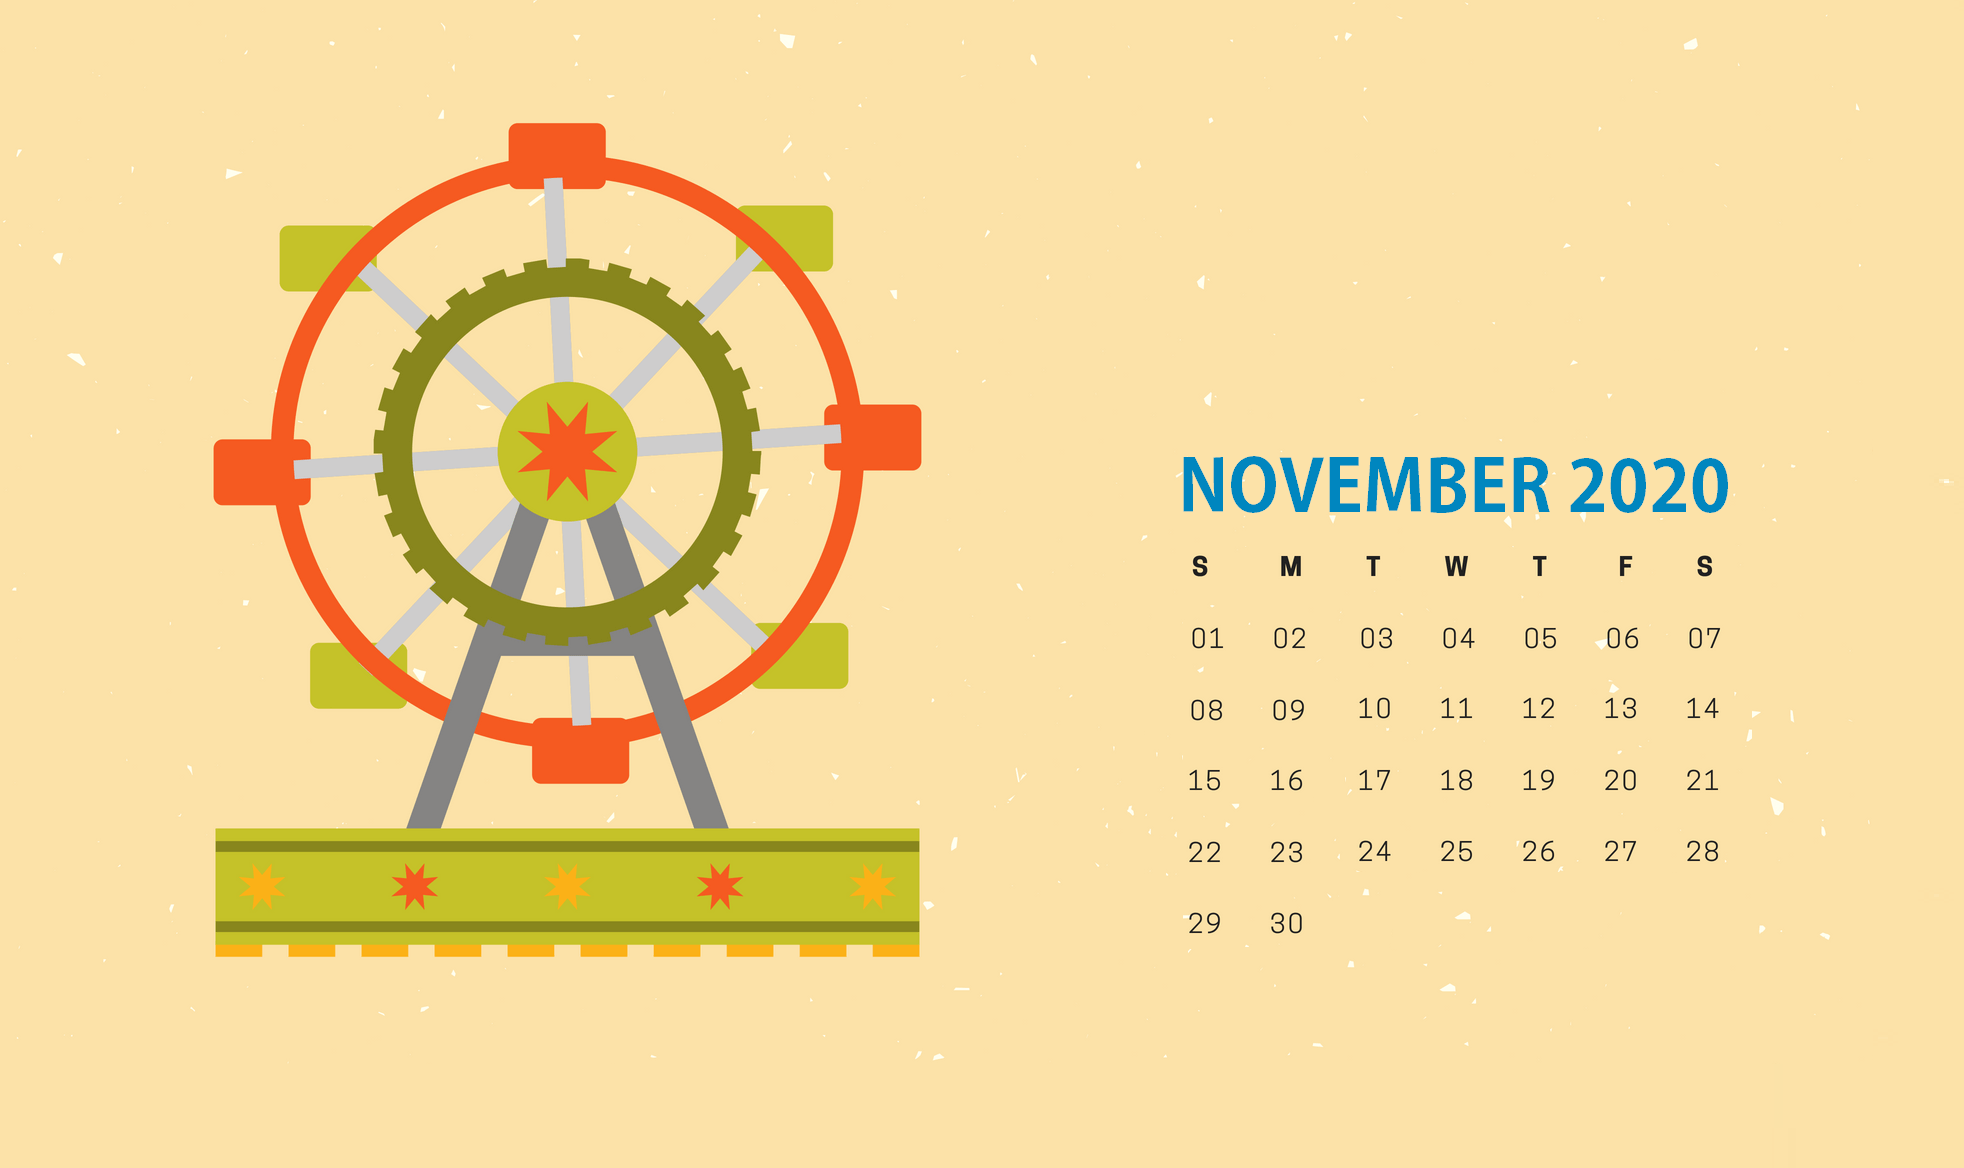 Cute November 2020 Calendar Wallpaper in 2020 | Calendar ...